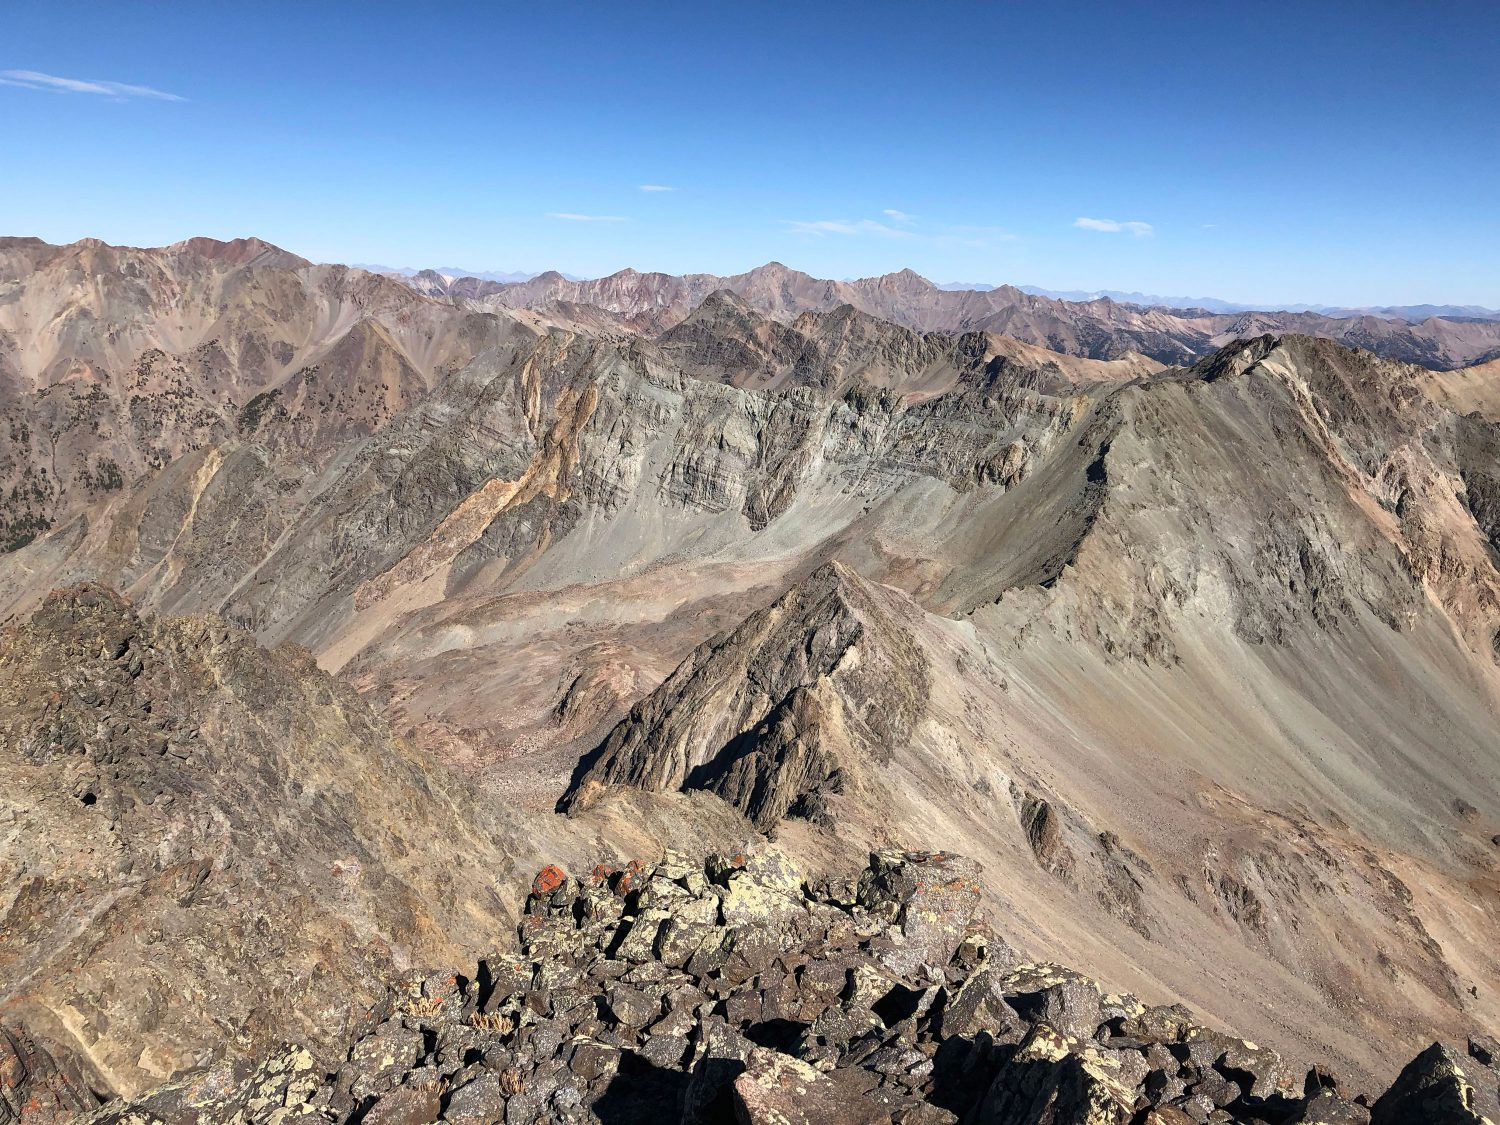 From Lorenzo summit, looking back at Silver (on the right). Derek Percoski Photo